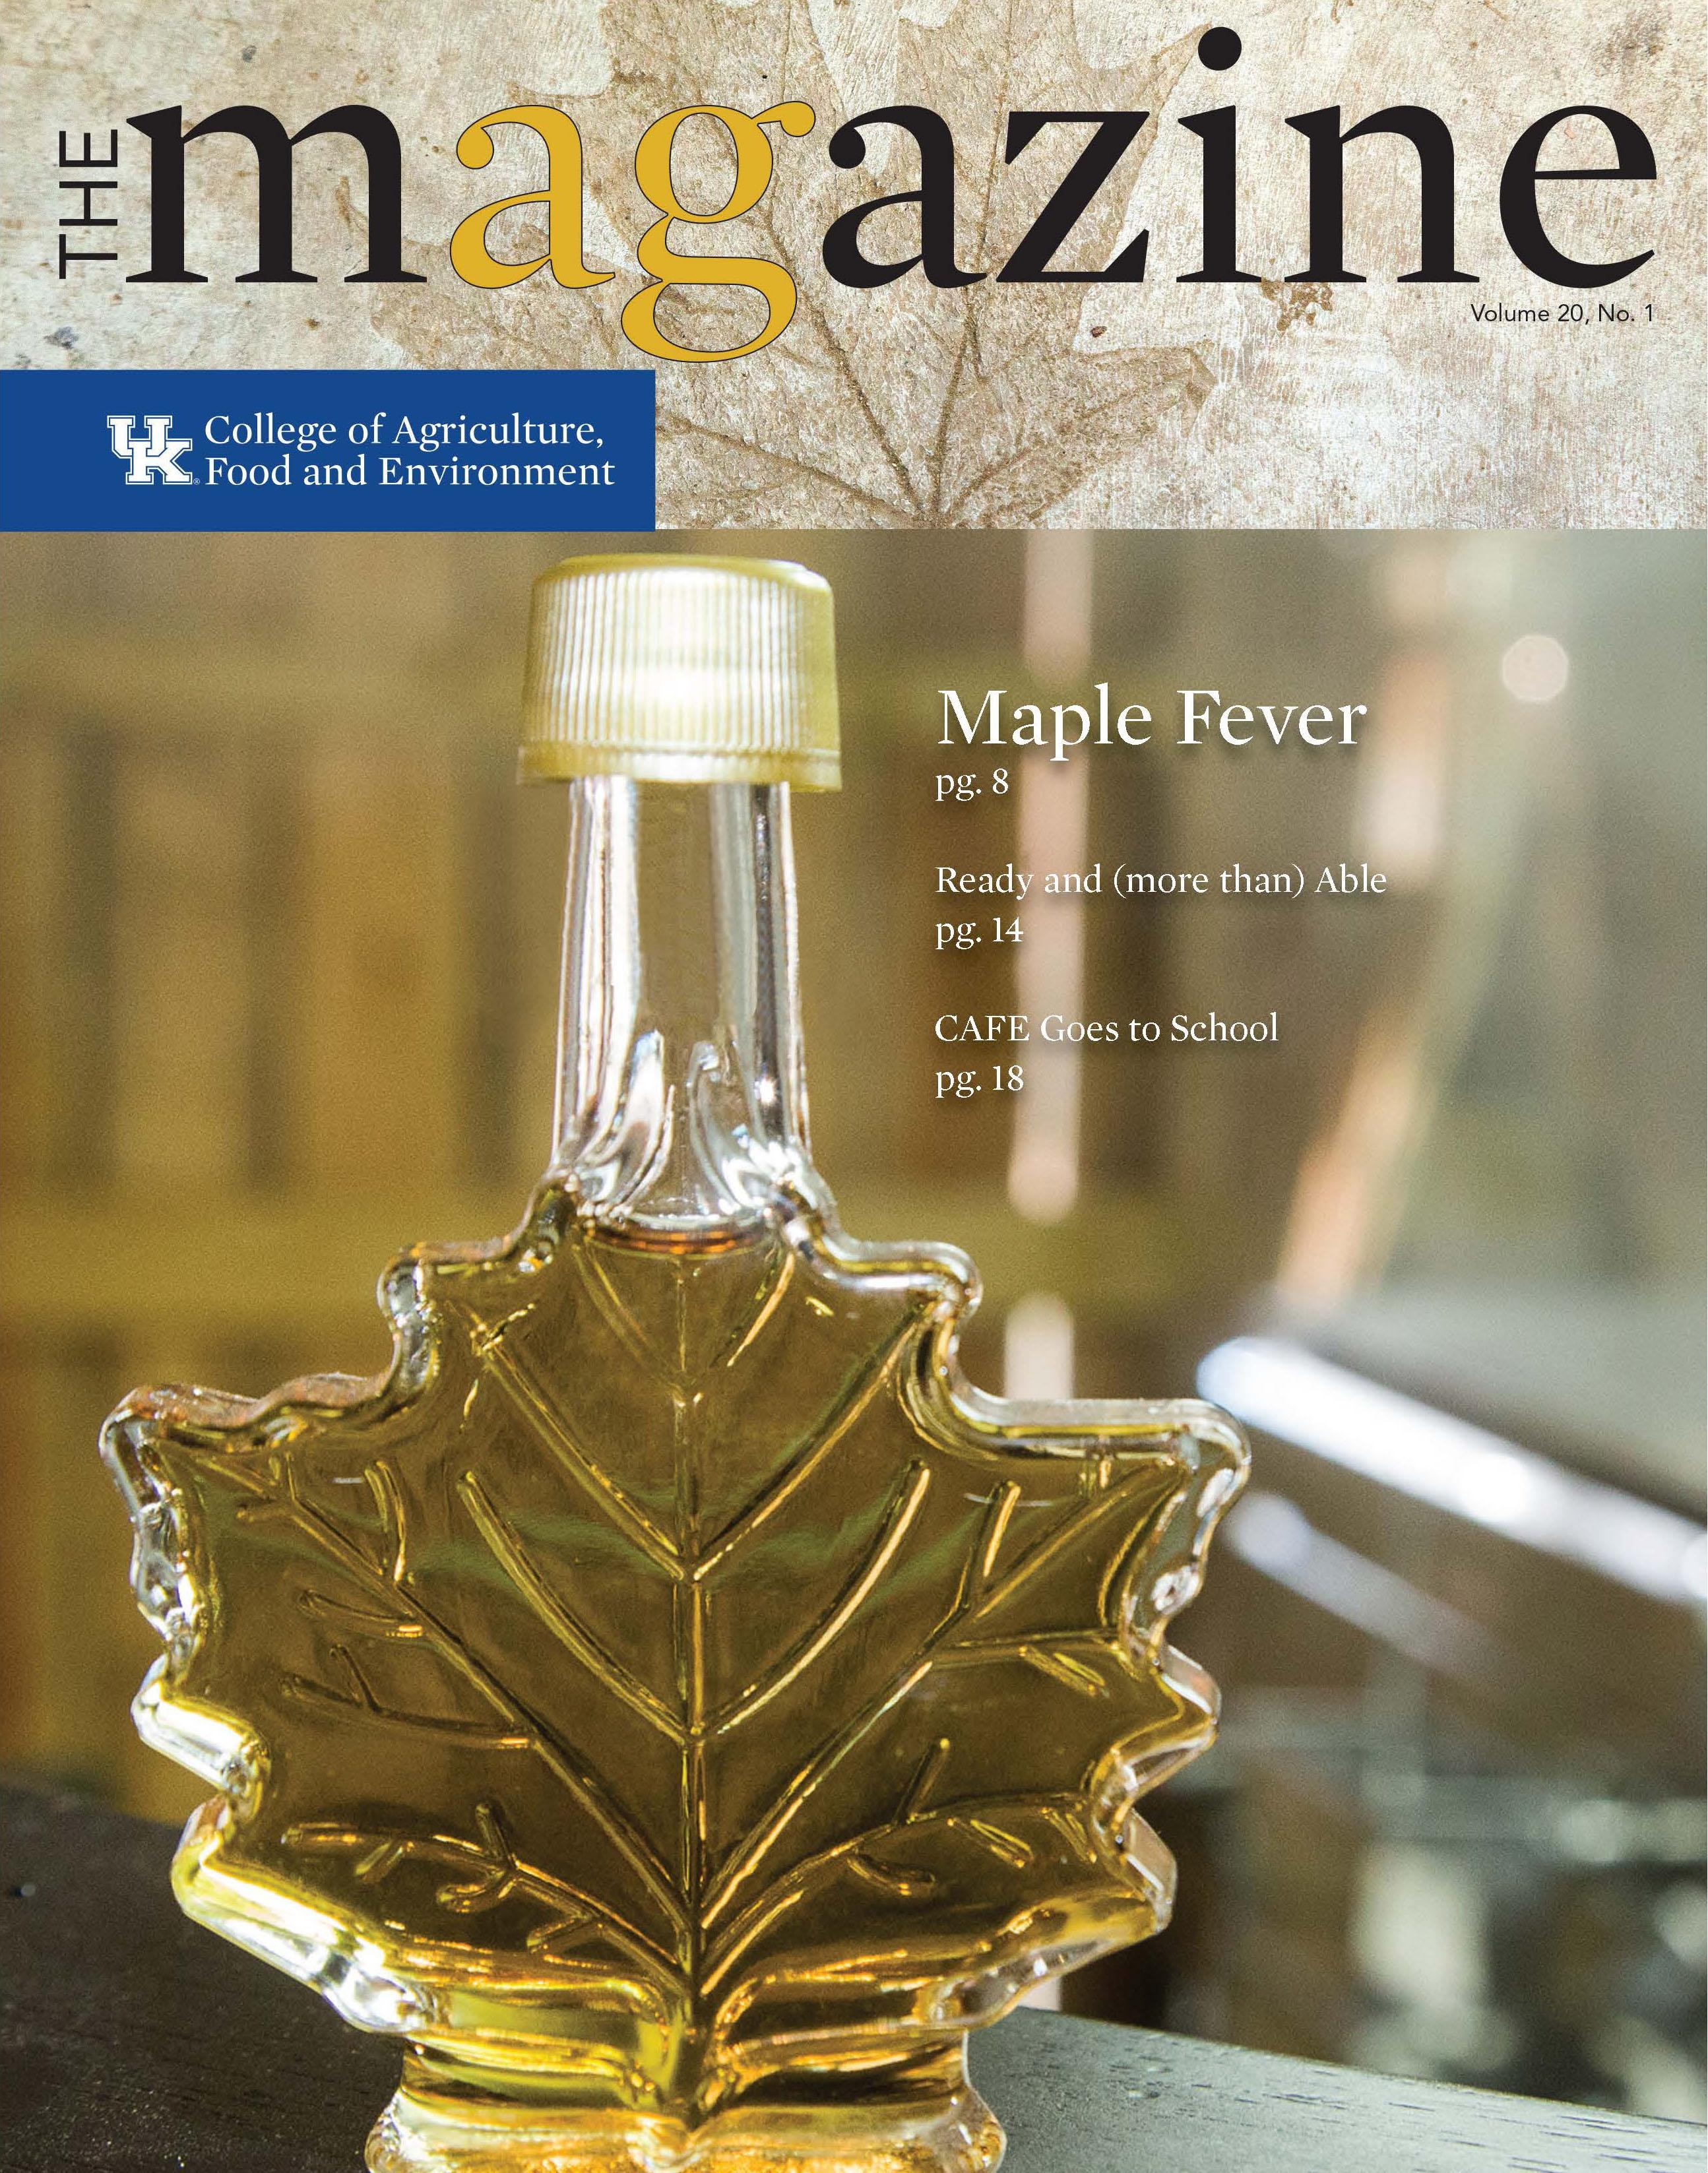 AgMagazine Spring 2018 Cover Image with Maple Syrup Bottle